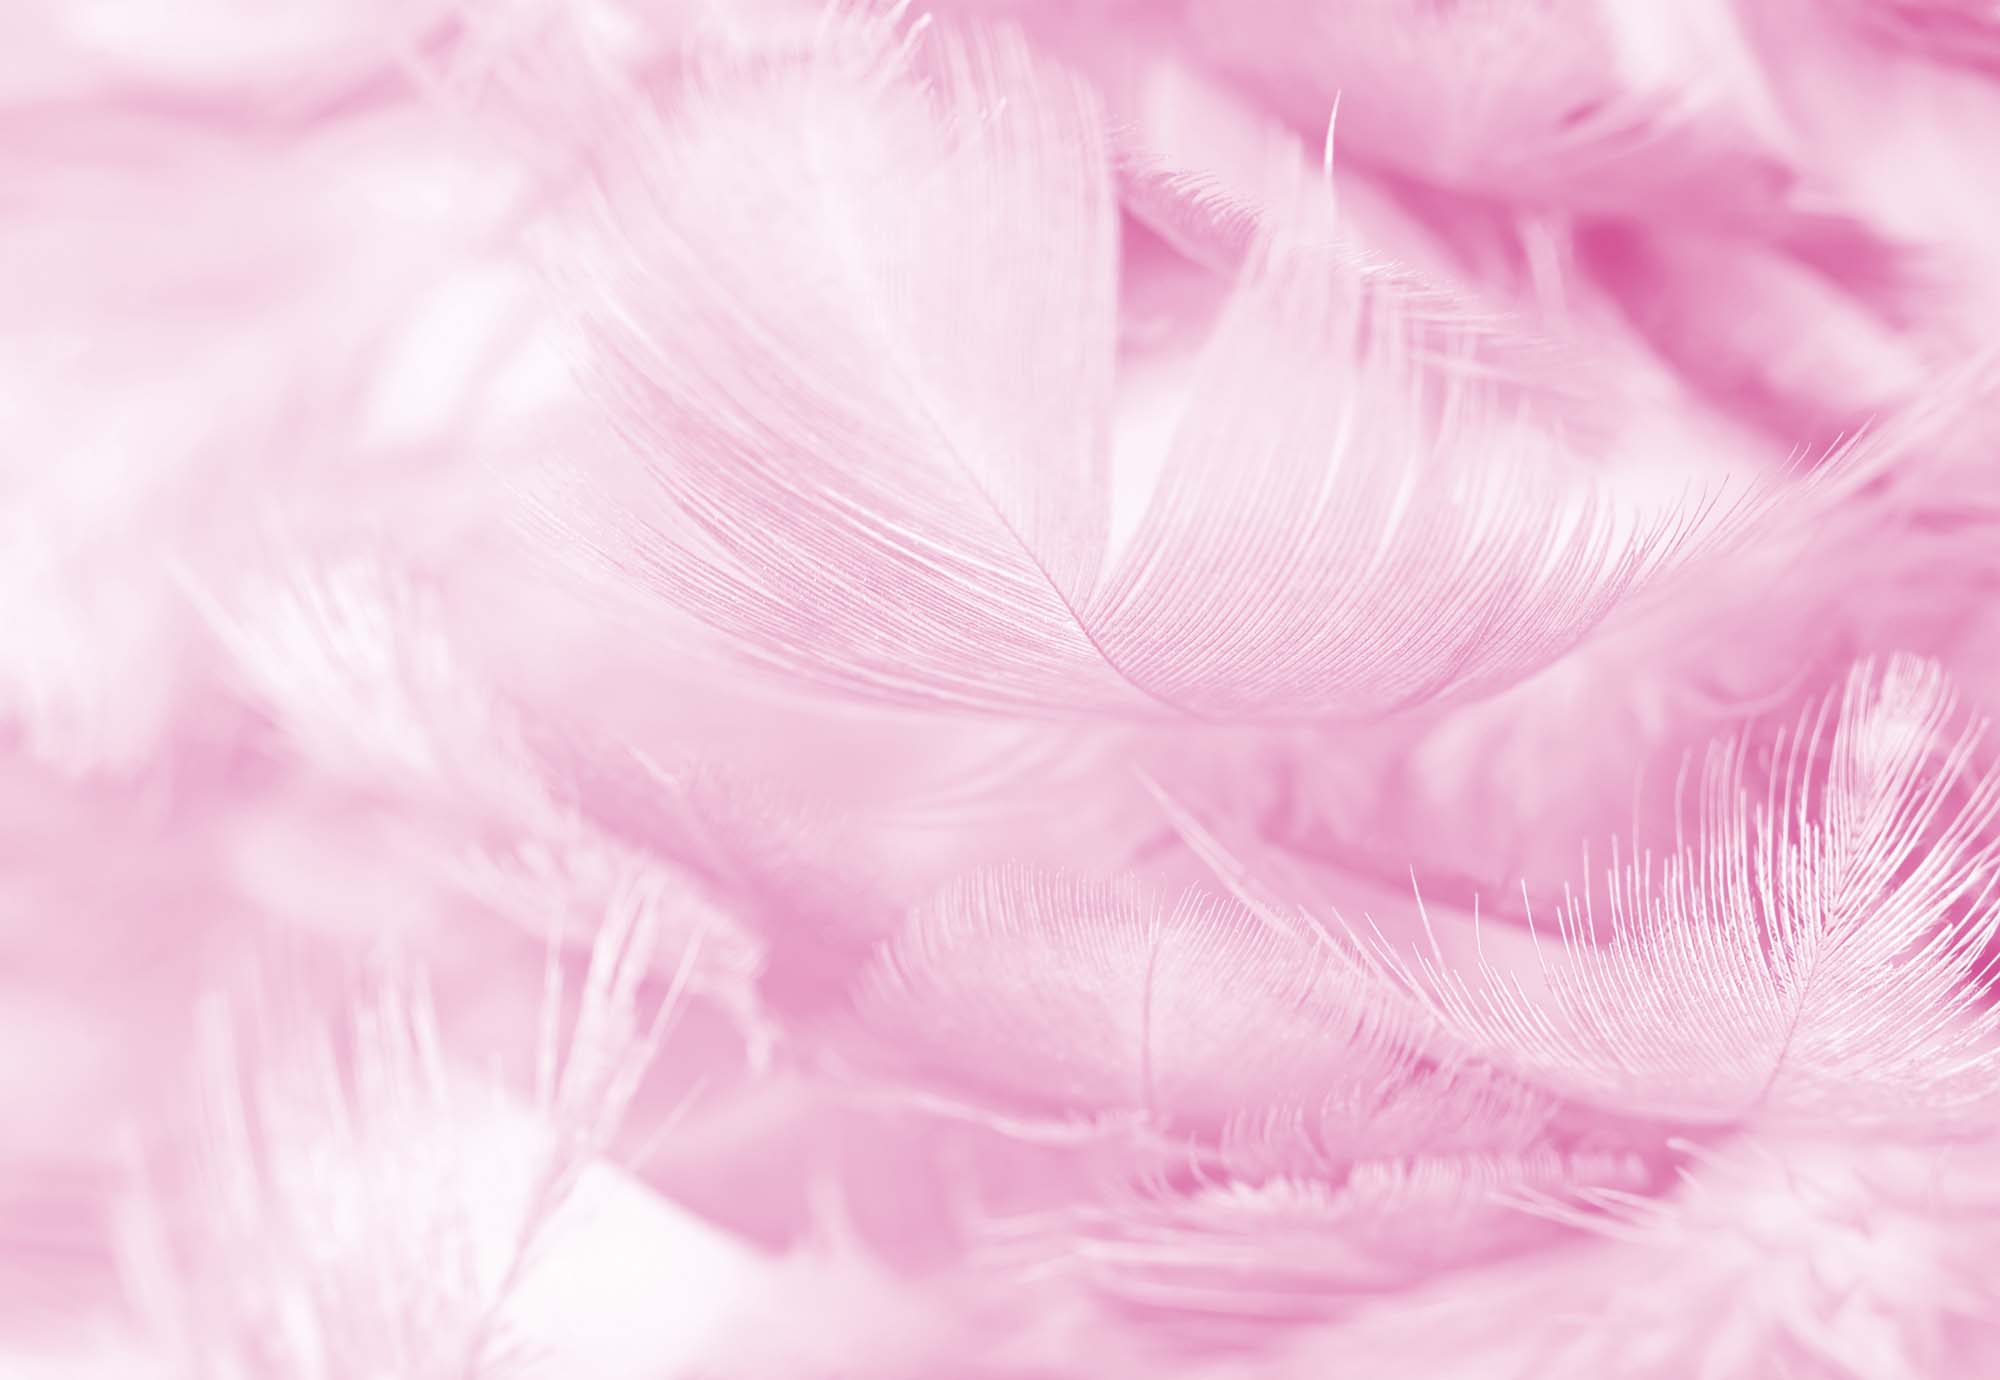 Fotobehang Feathers in Pink